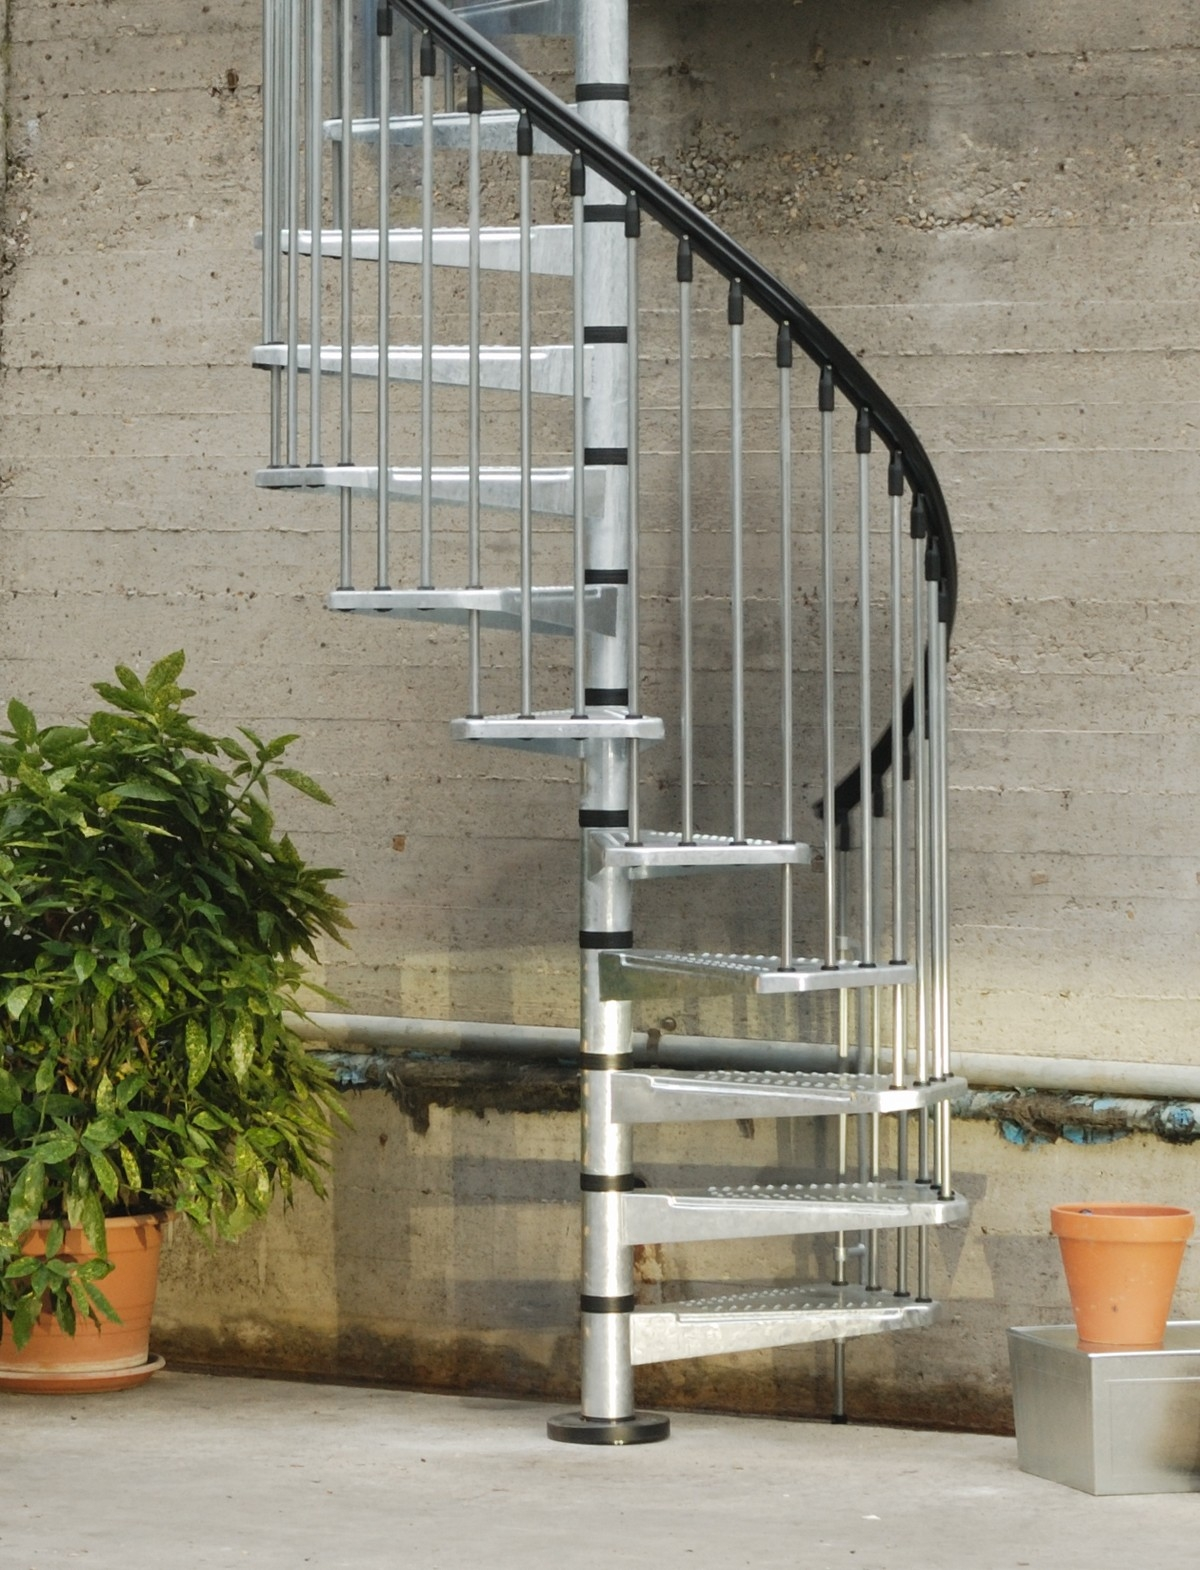 Metal Outdoor Spiral Staircase Exterior Stairs | Outdoor Spiral Staircase For Deck | 36 Inch Diameter | Small Footprint | Steel | Balcony Outdoor | 2 Story